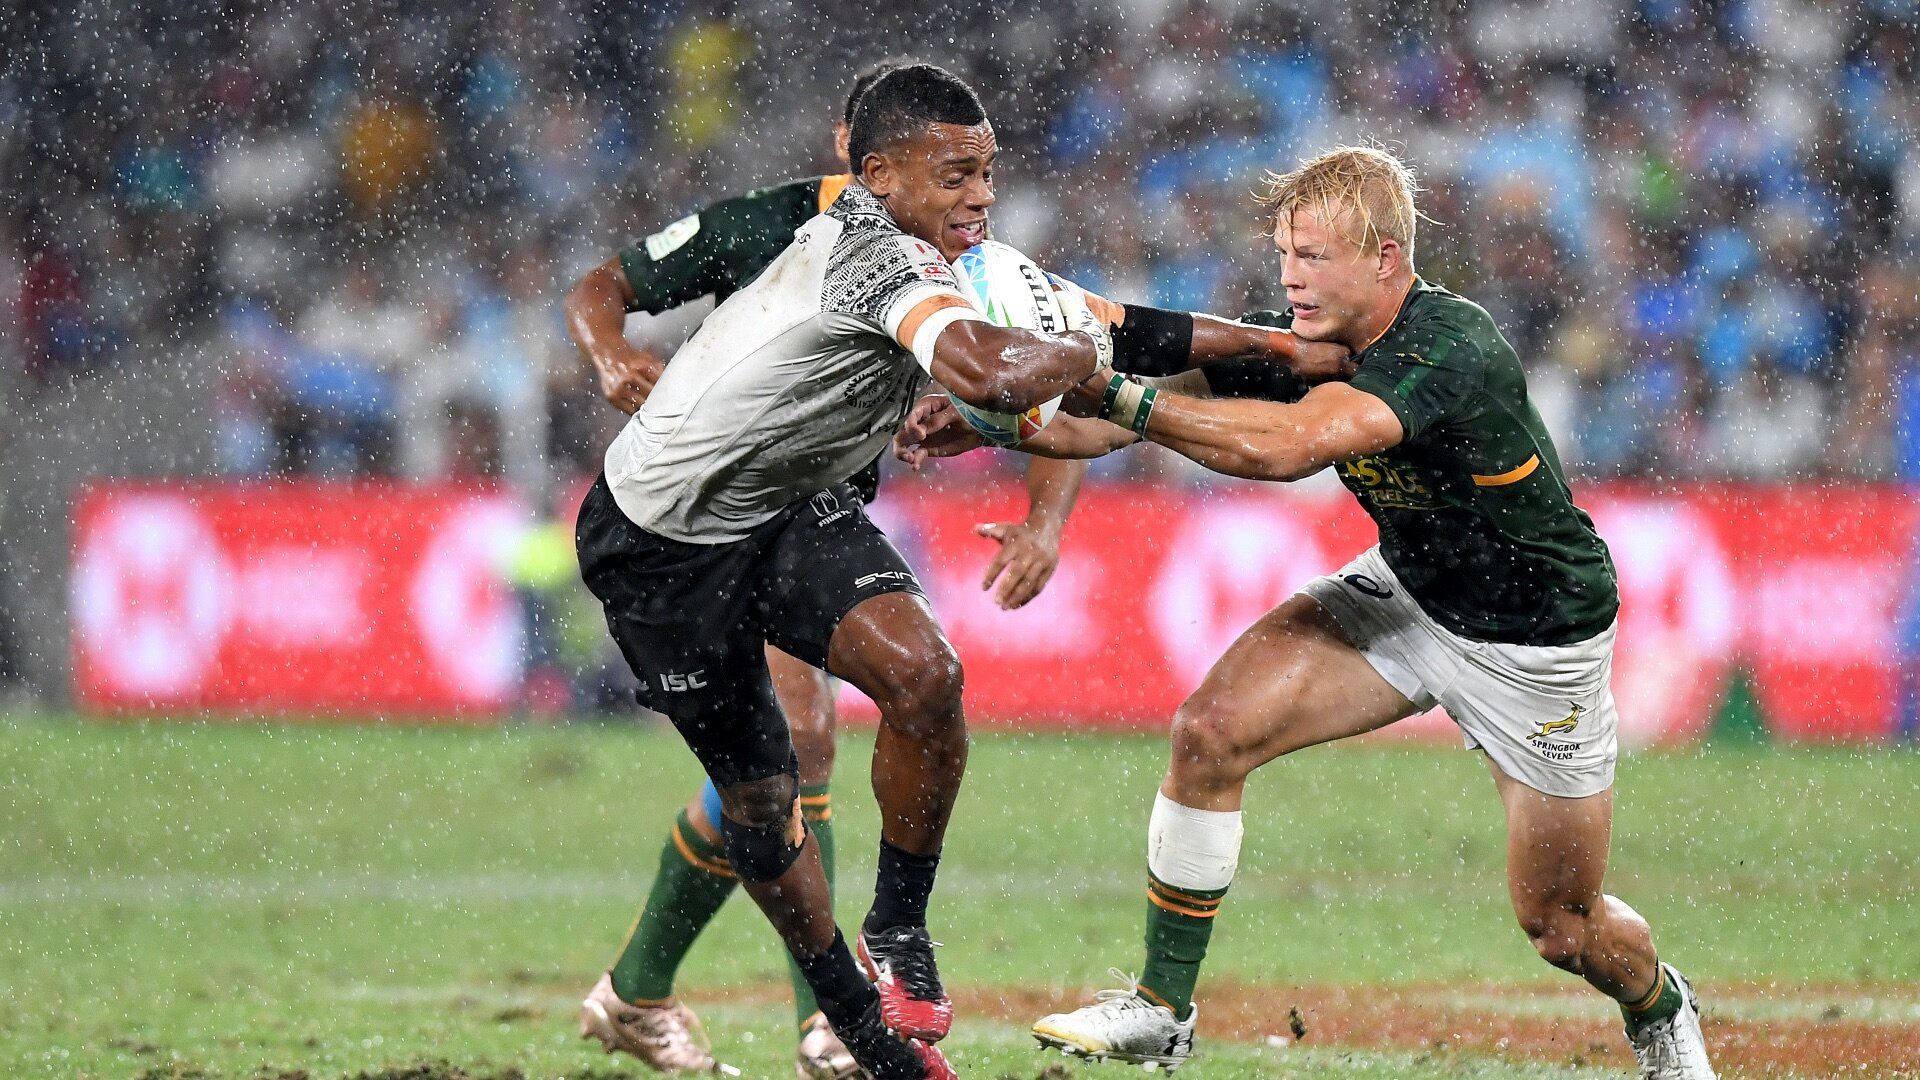 South Africa and New Zealand dominate the 2020 7s Dream Teams